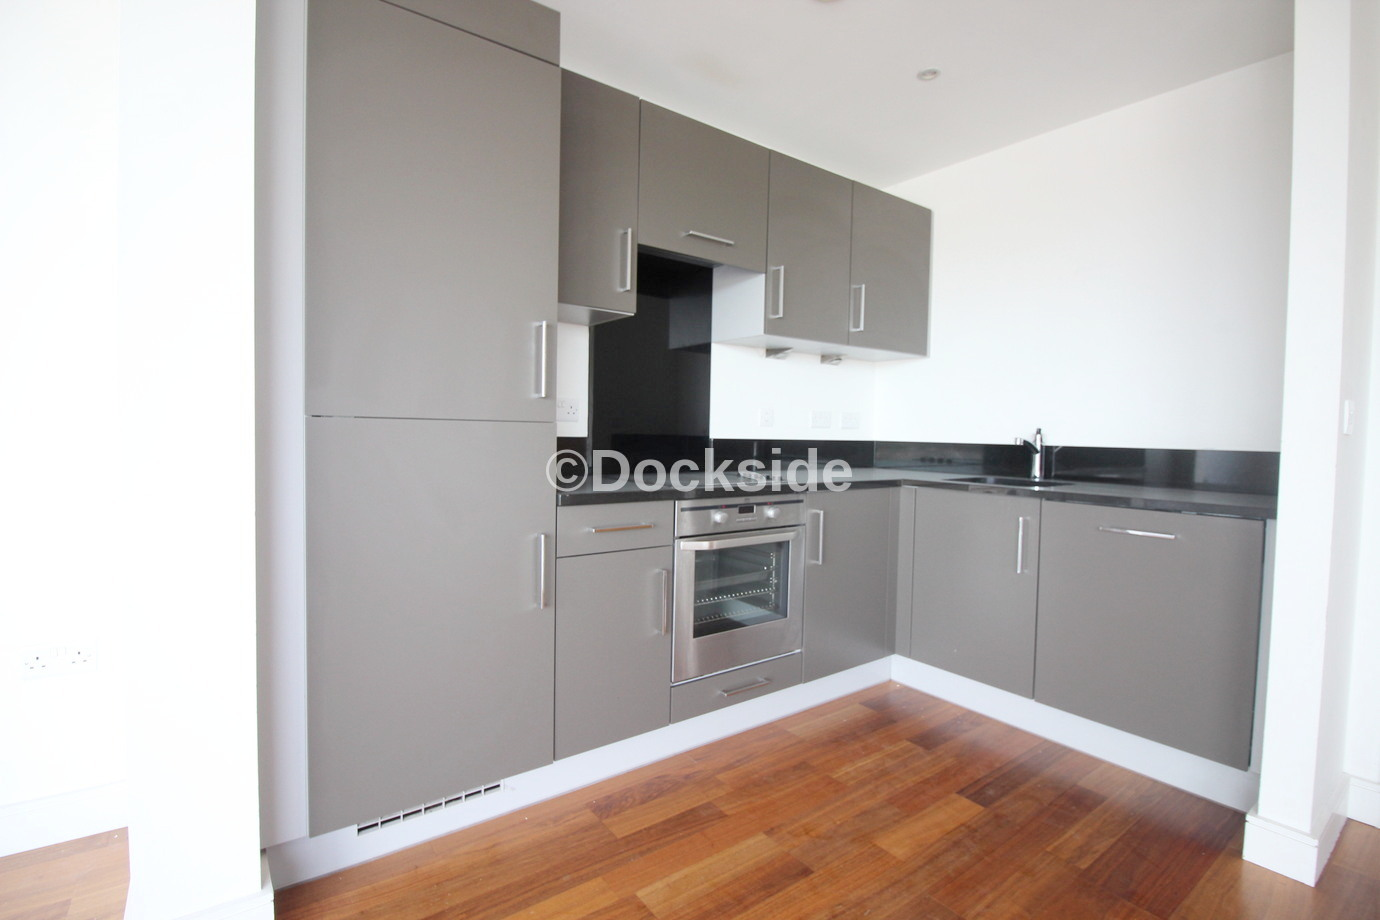 2 bed flat to rent in Dock Head Road, ME4